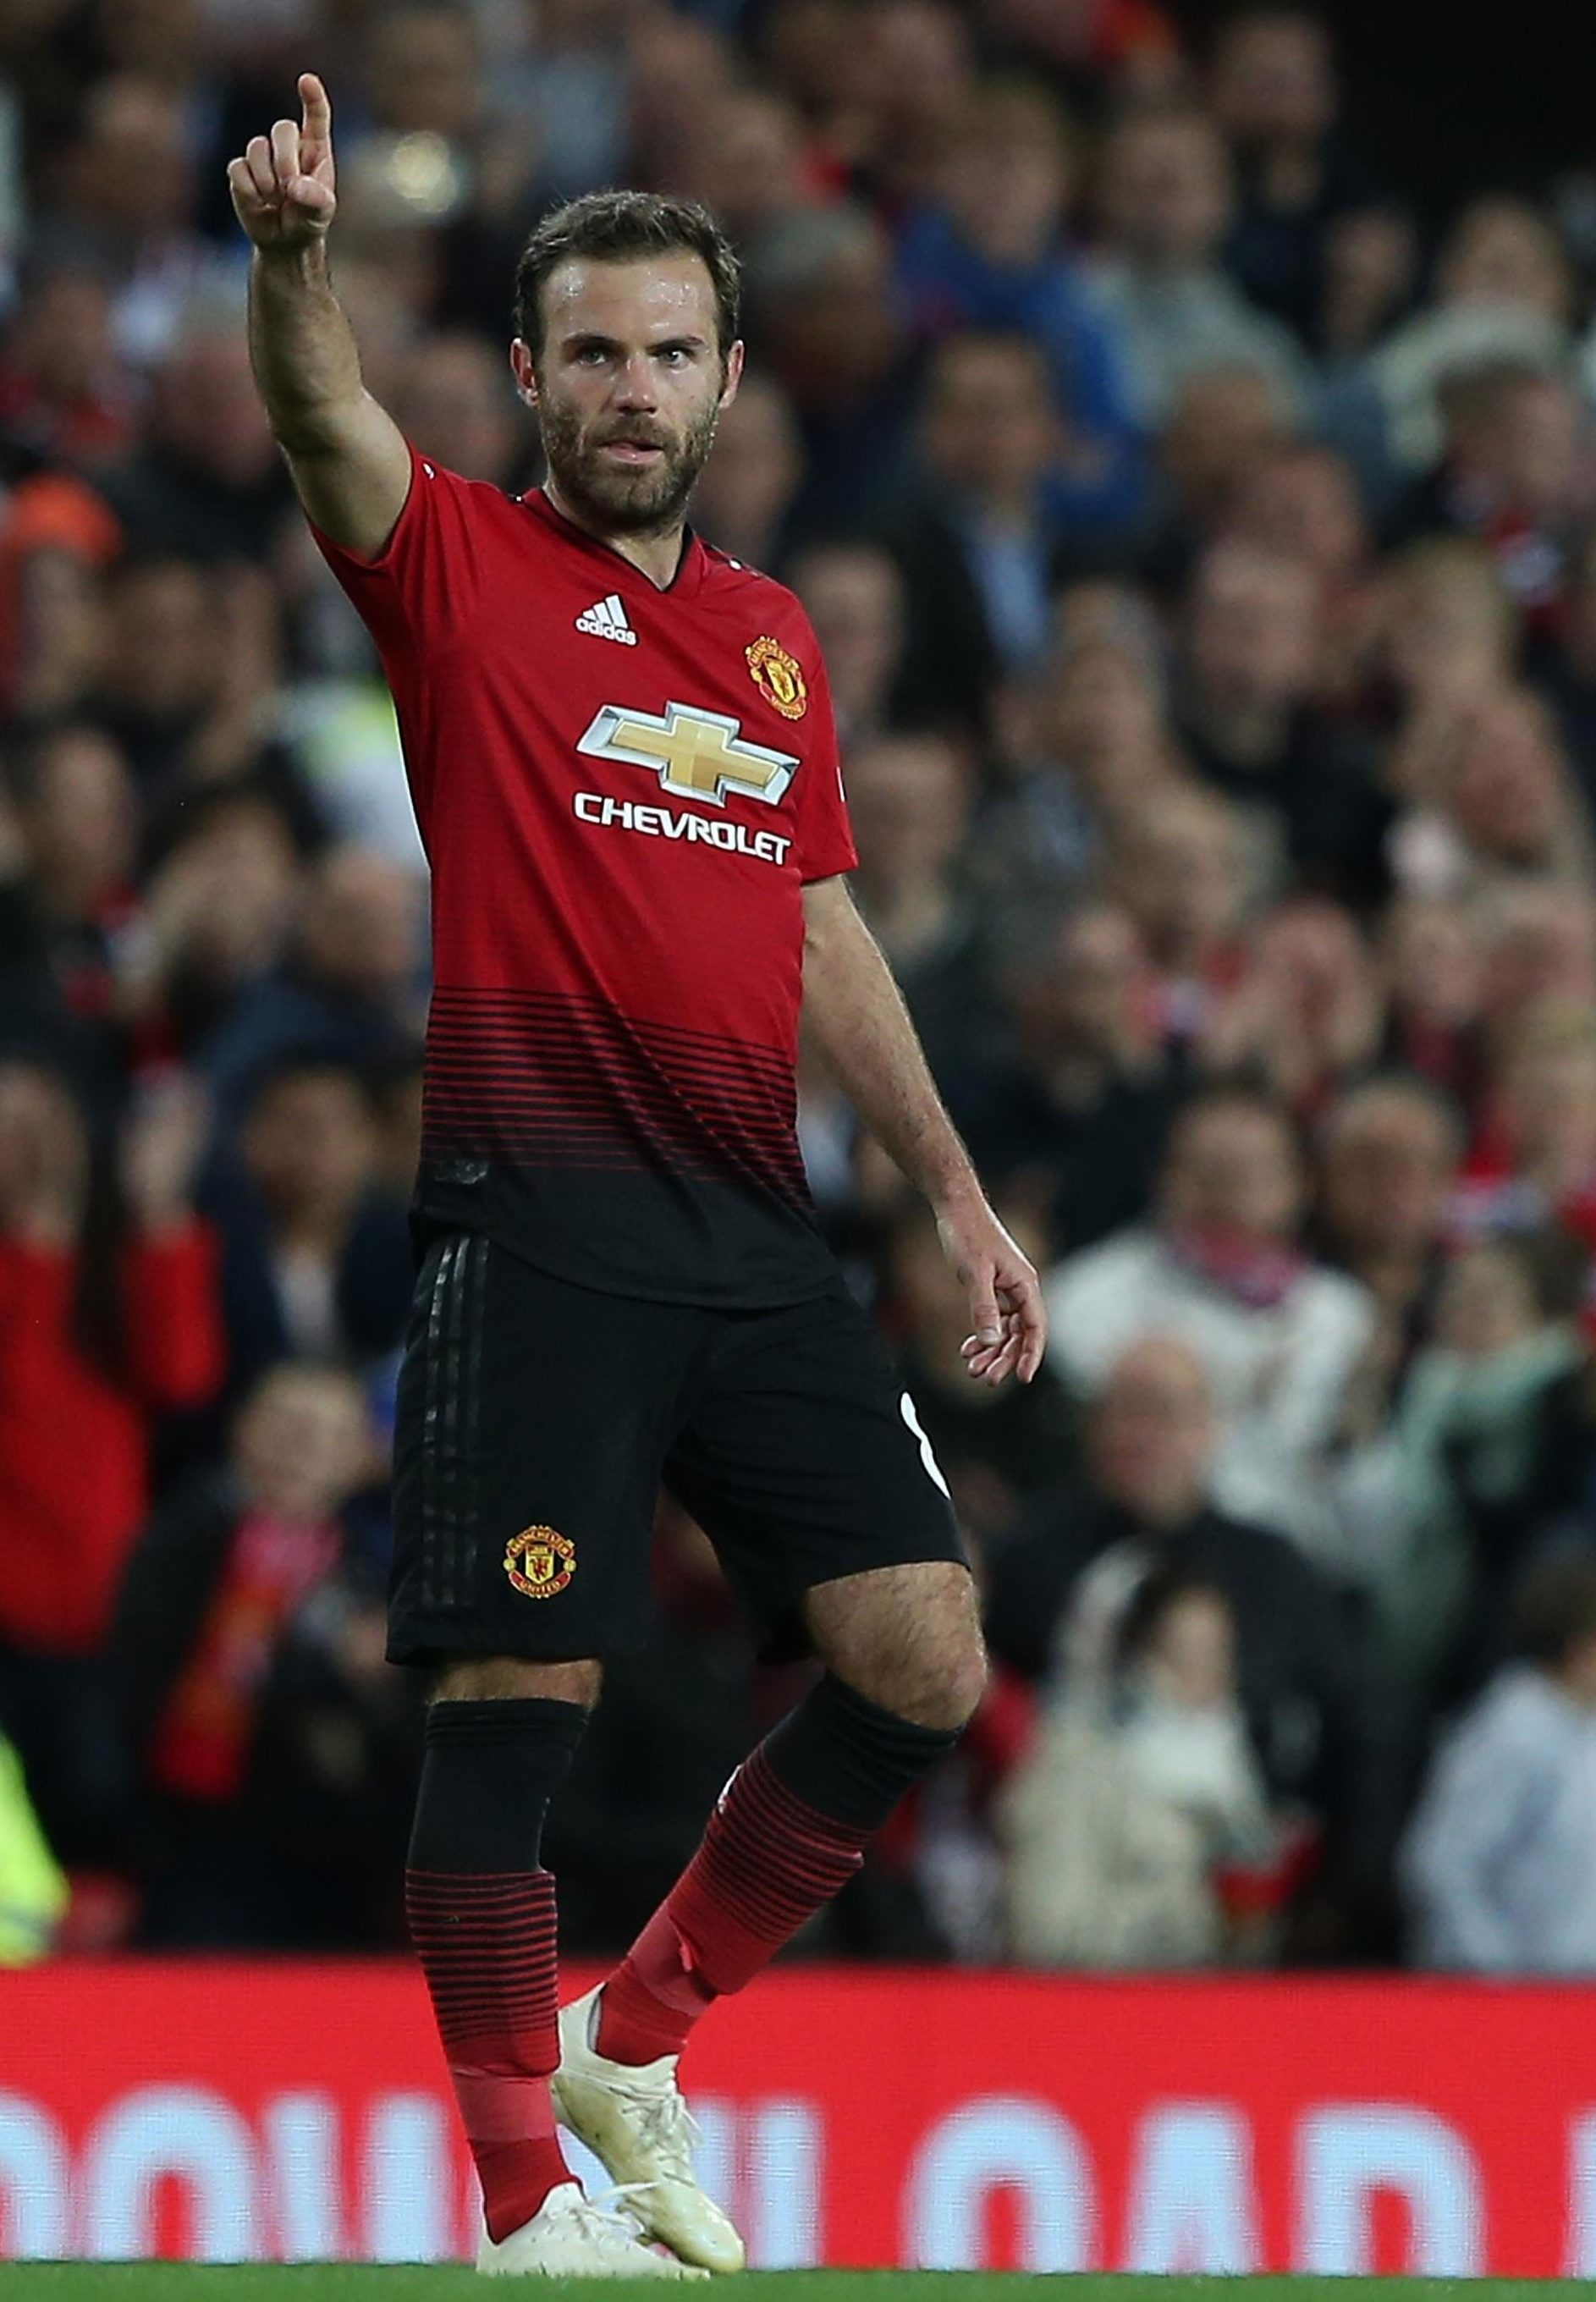 Juan Mata's contract at Manchester United expires next summer